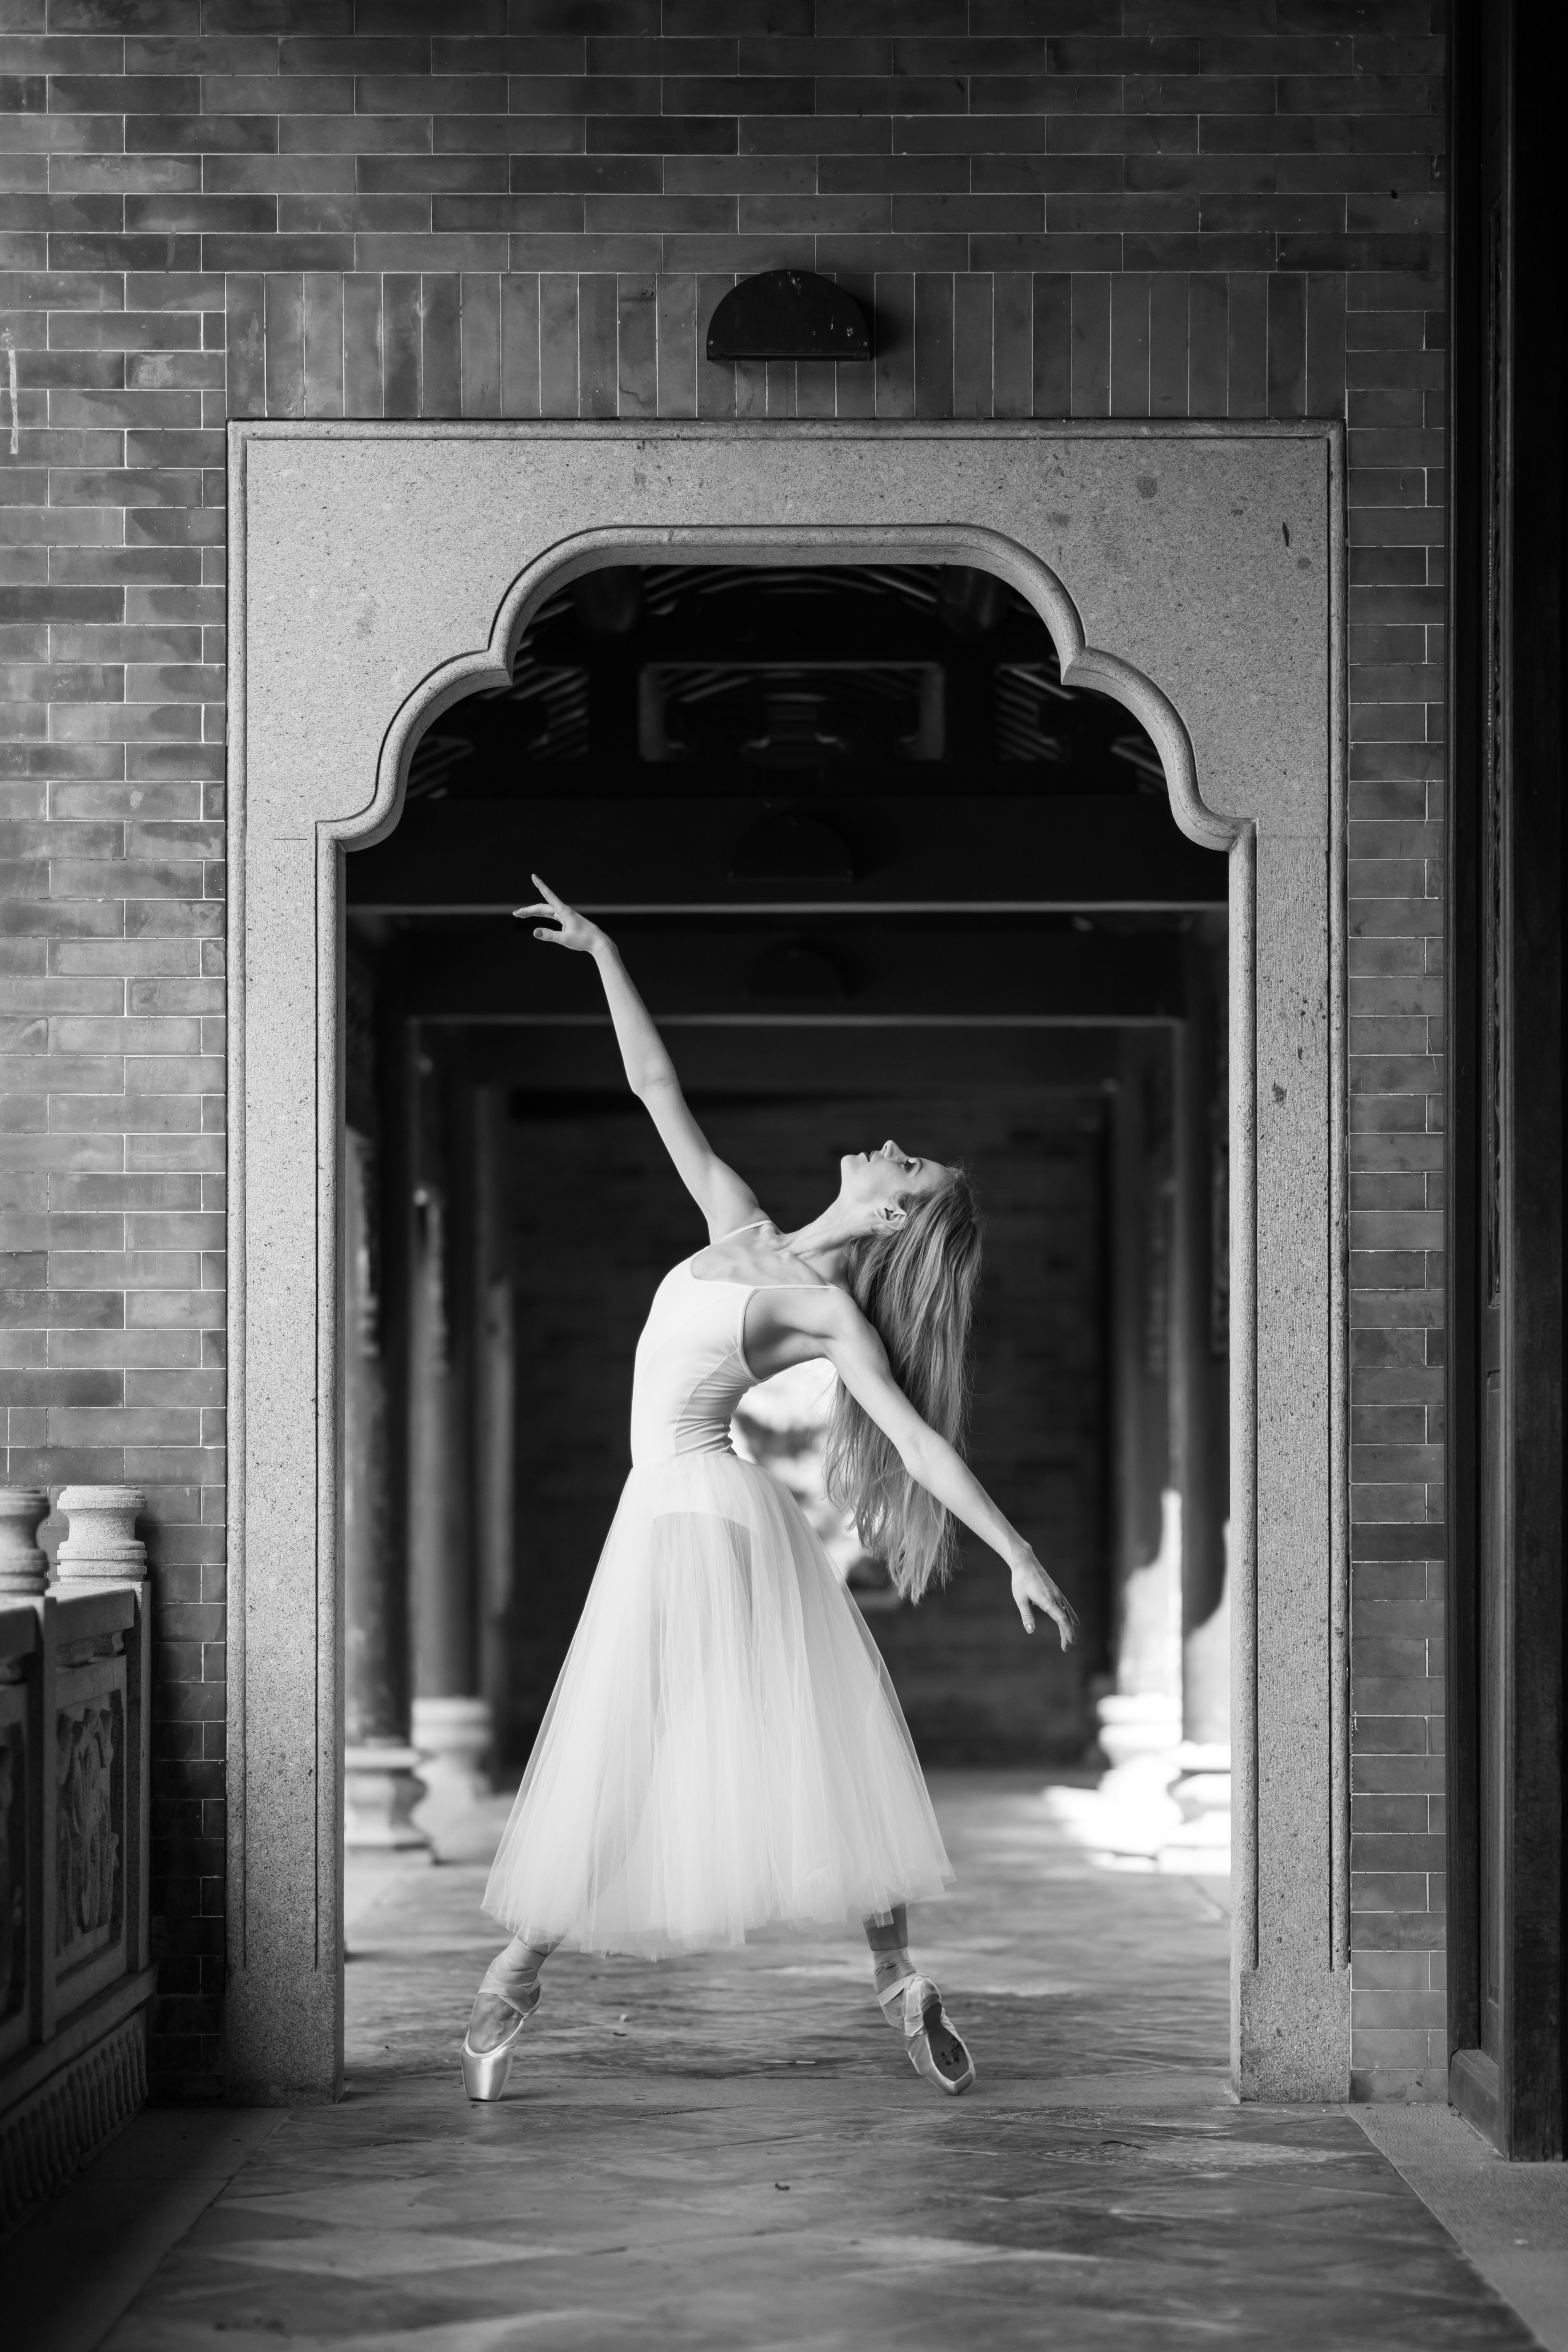 Jessica Burrows; photo by Lee Wai Leung for Worldwide Dancer Project; photo courtesy of Jessica Burrows